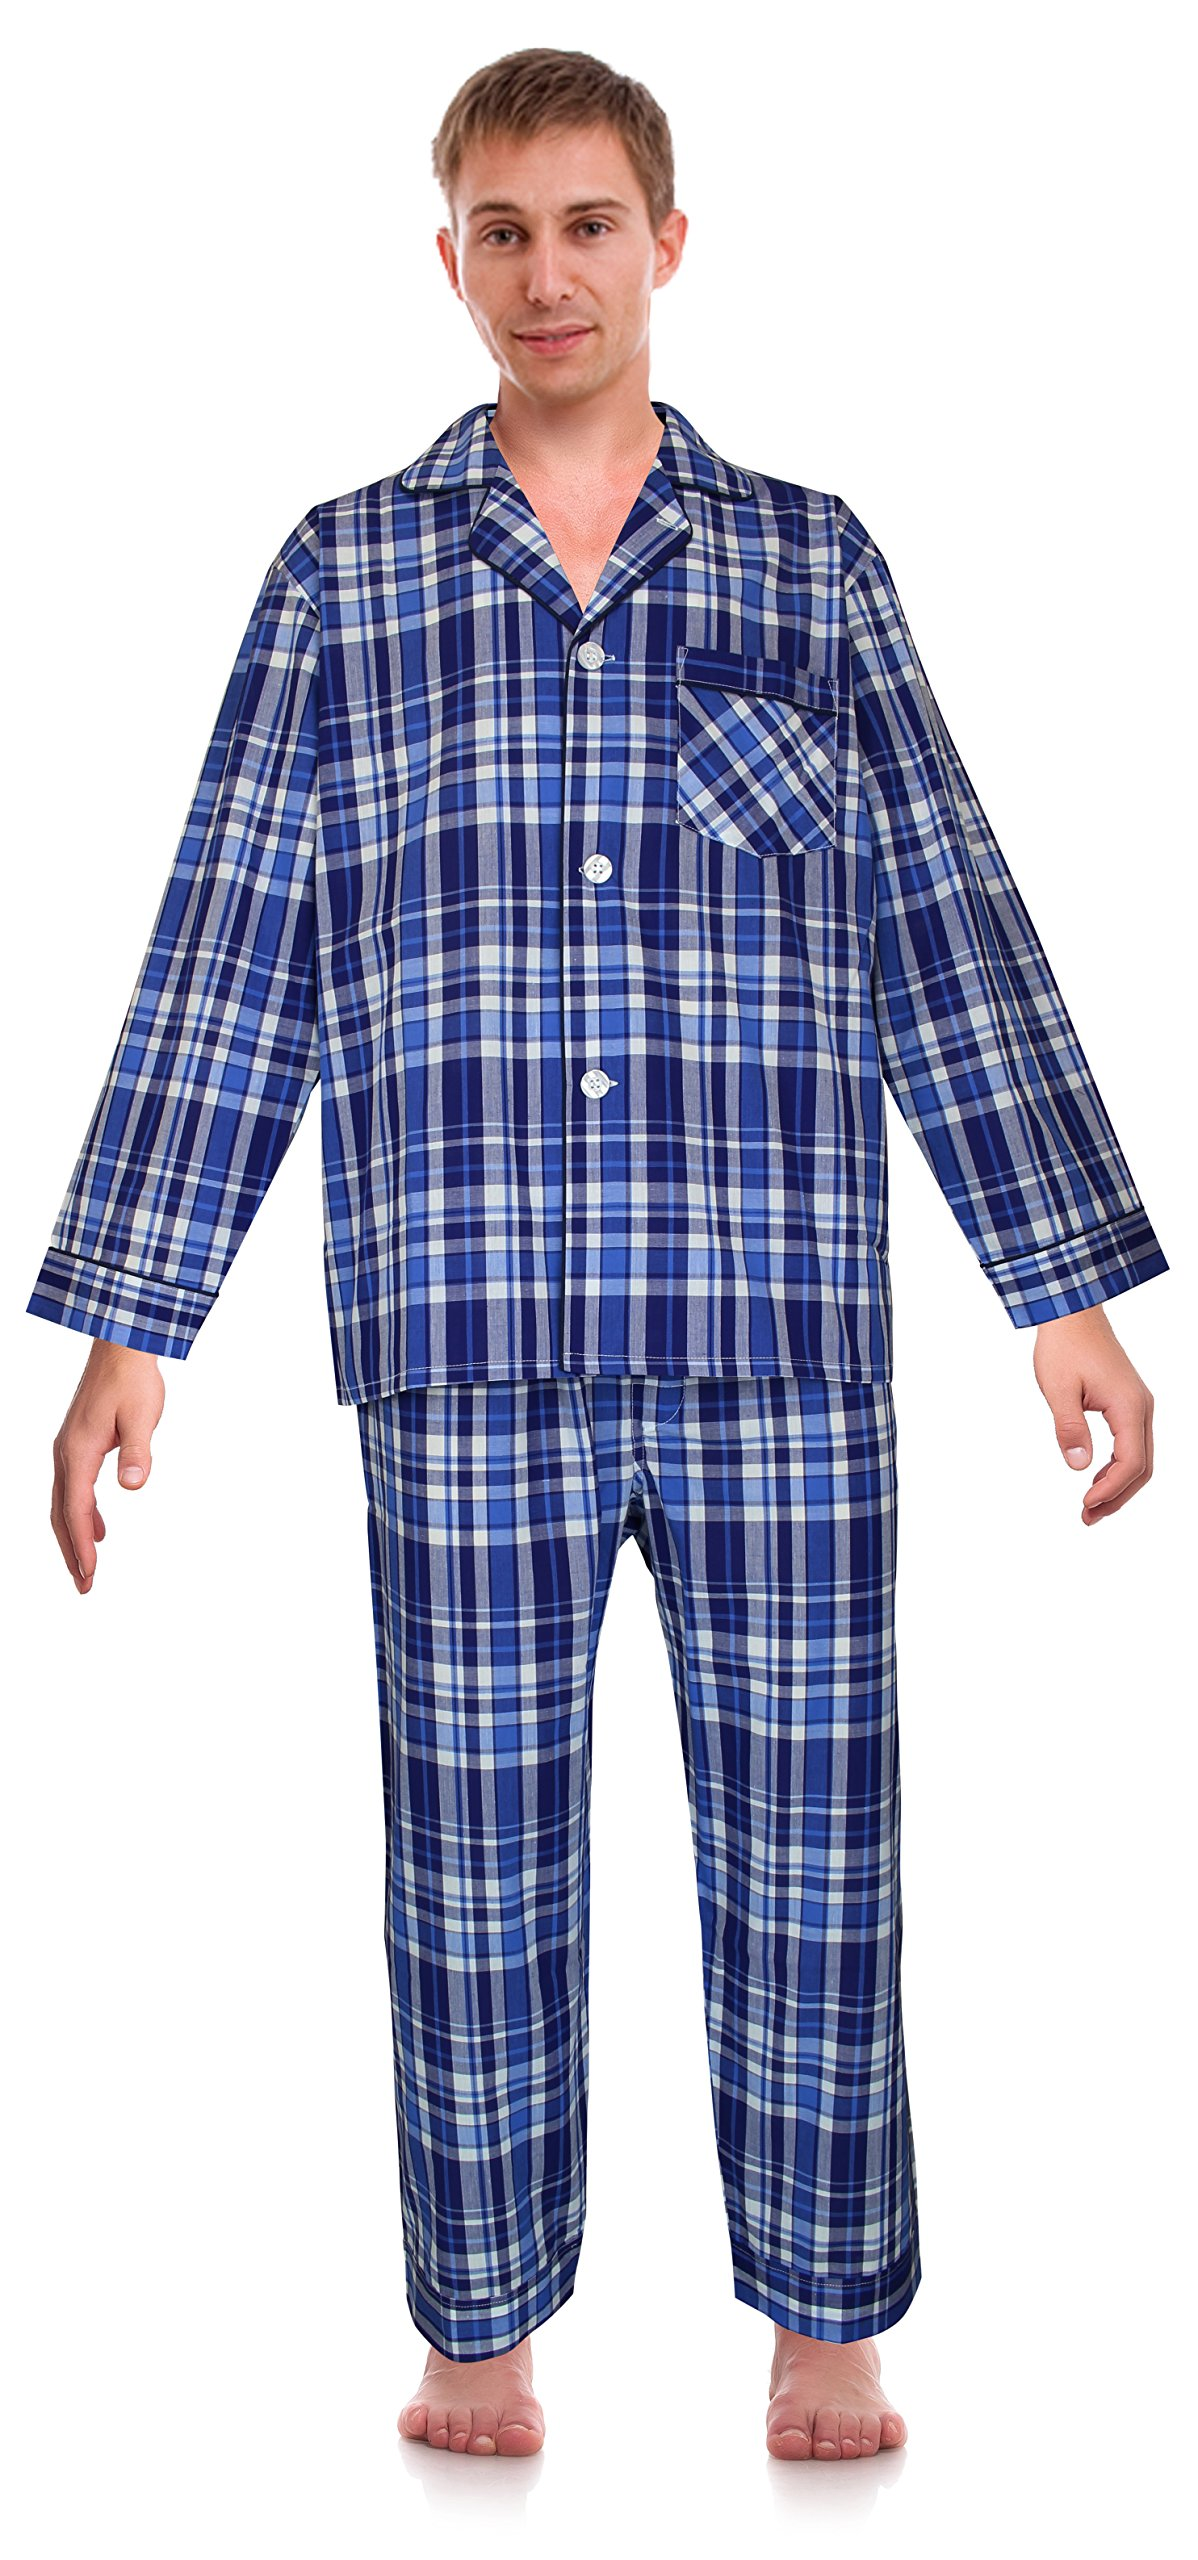 9e2519621c2 RK Classical Sleepwear Men s Broadcloth Woven Pajama Set product image